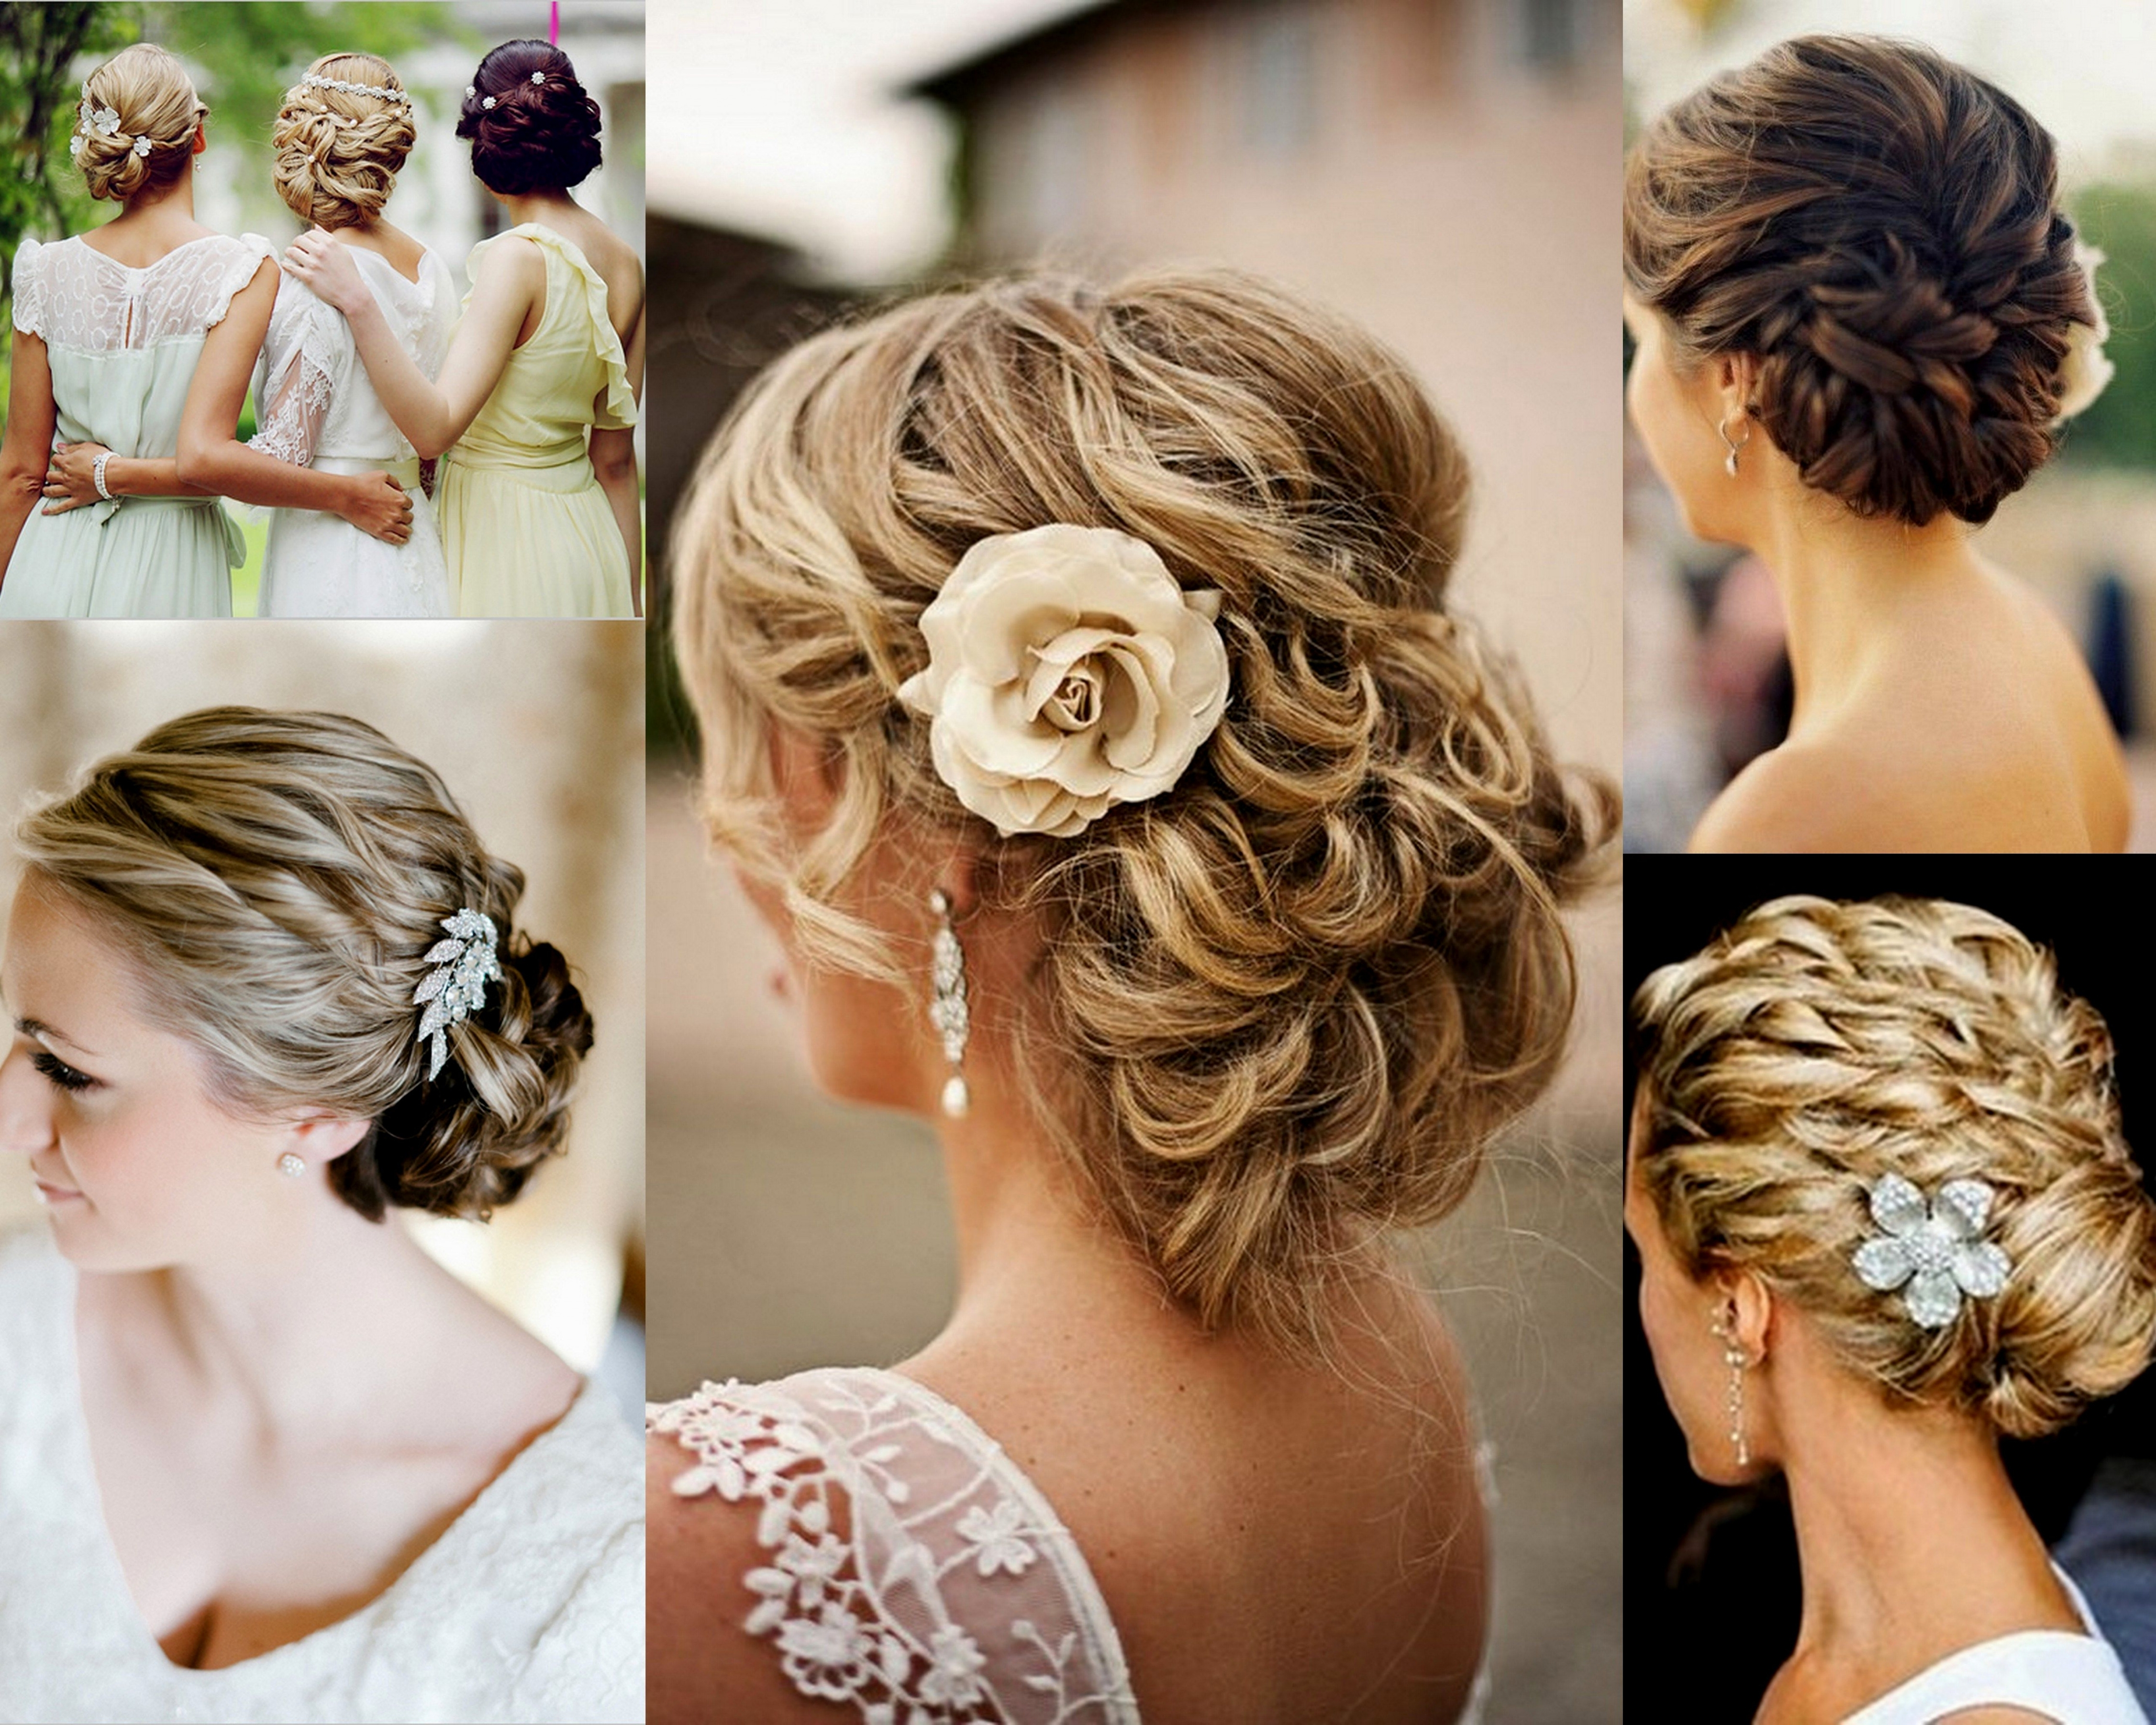 Hairstyles Ideas (View 7 of 15)